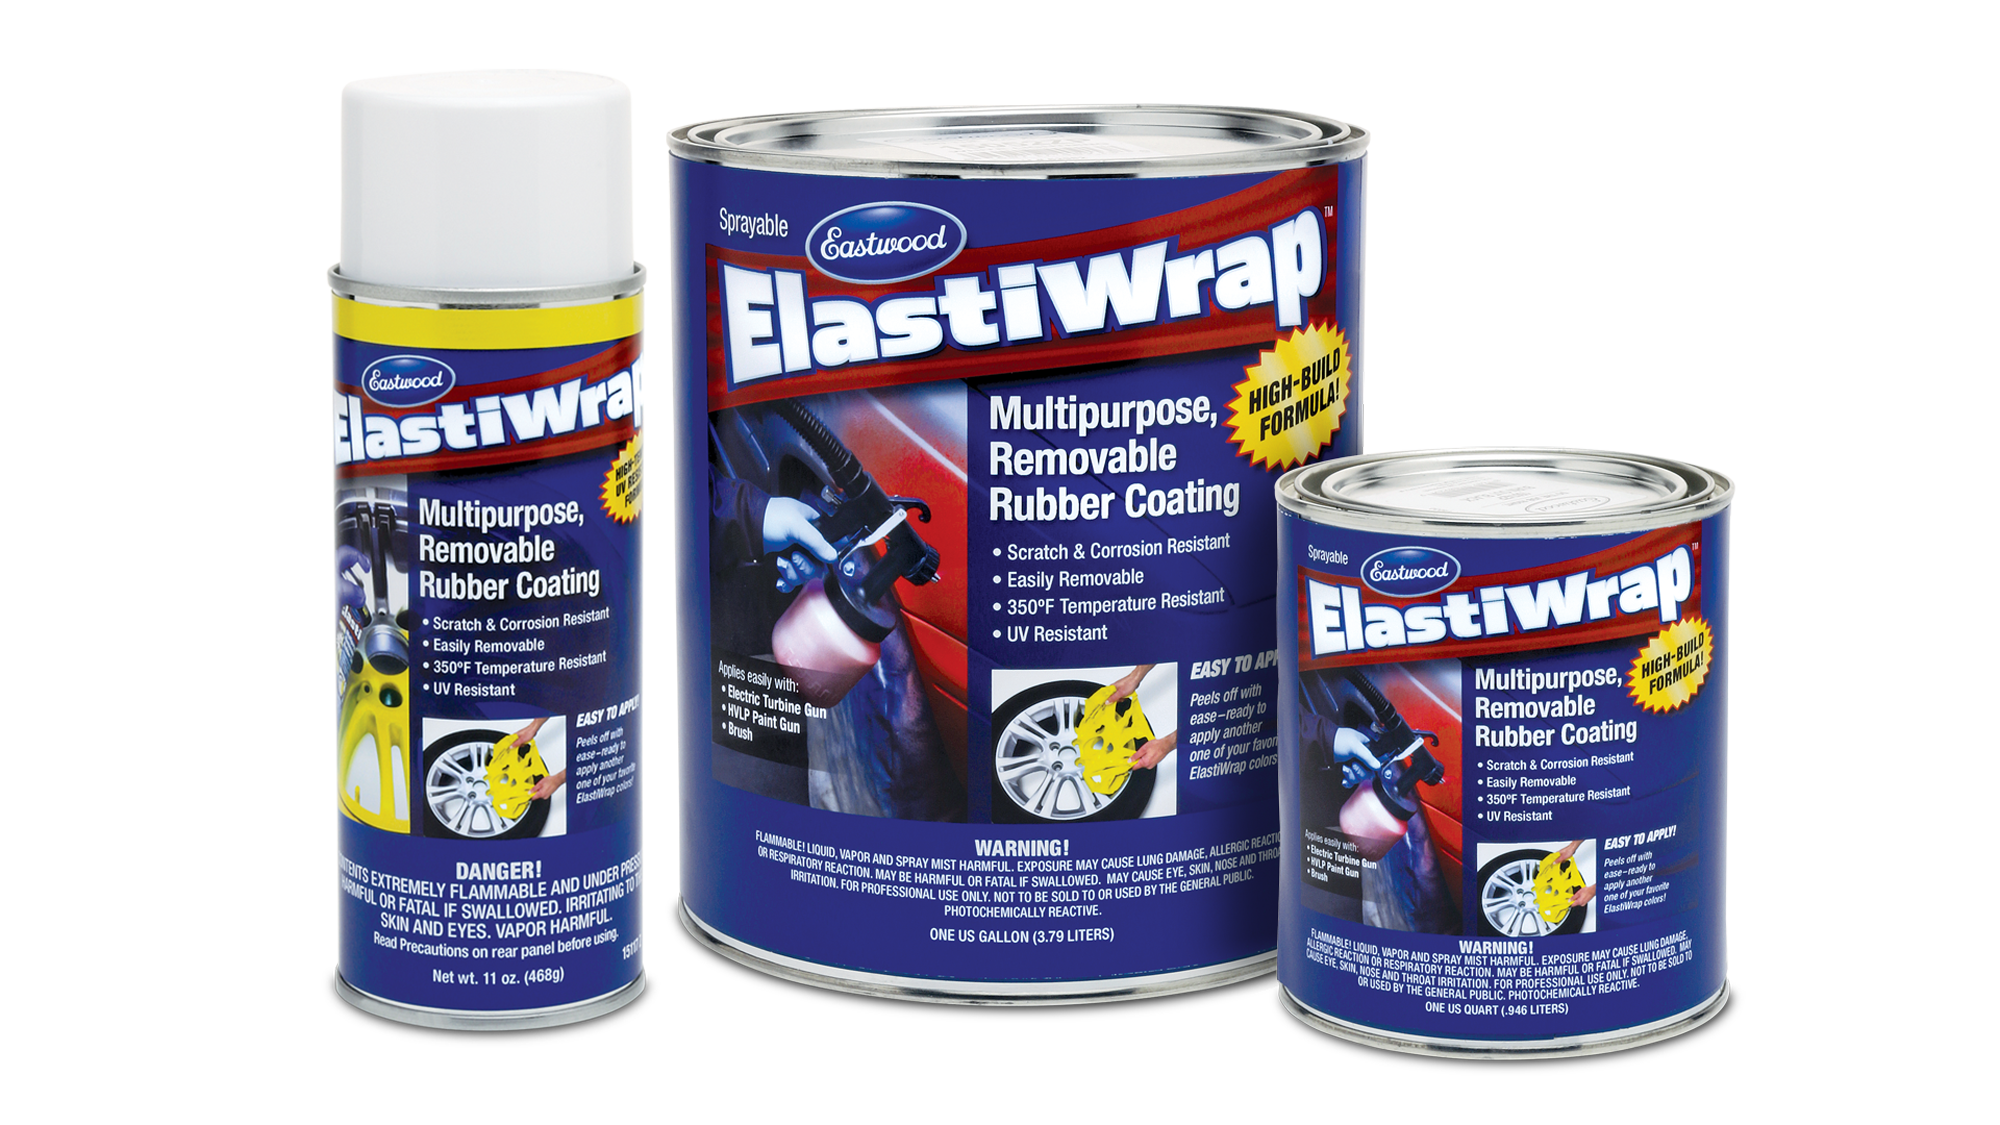 Eastwood Brand ElastiWrap Rubberized Coating